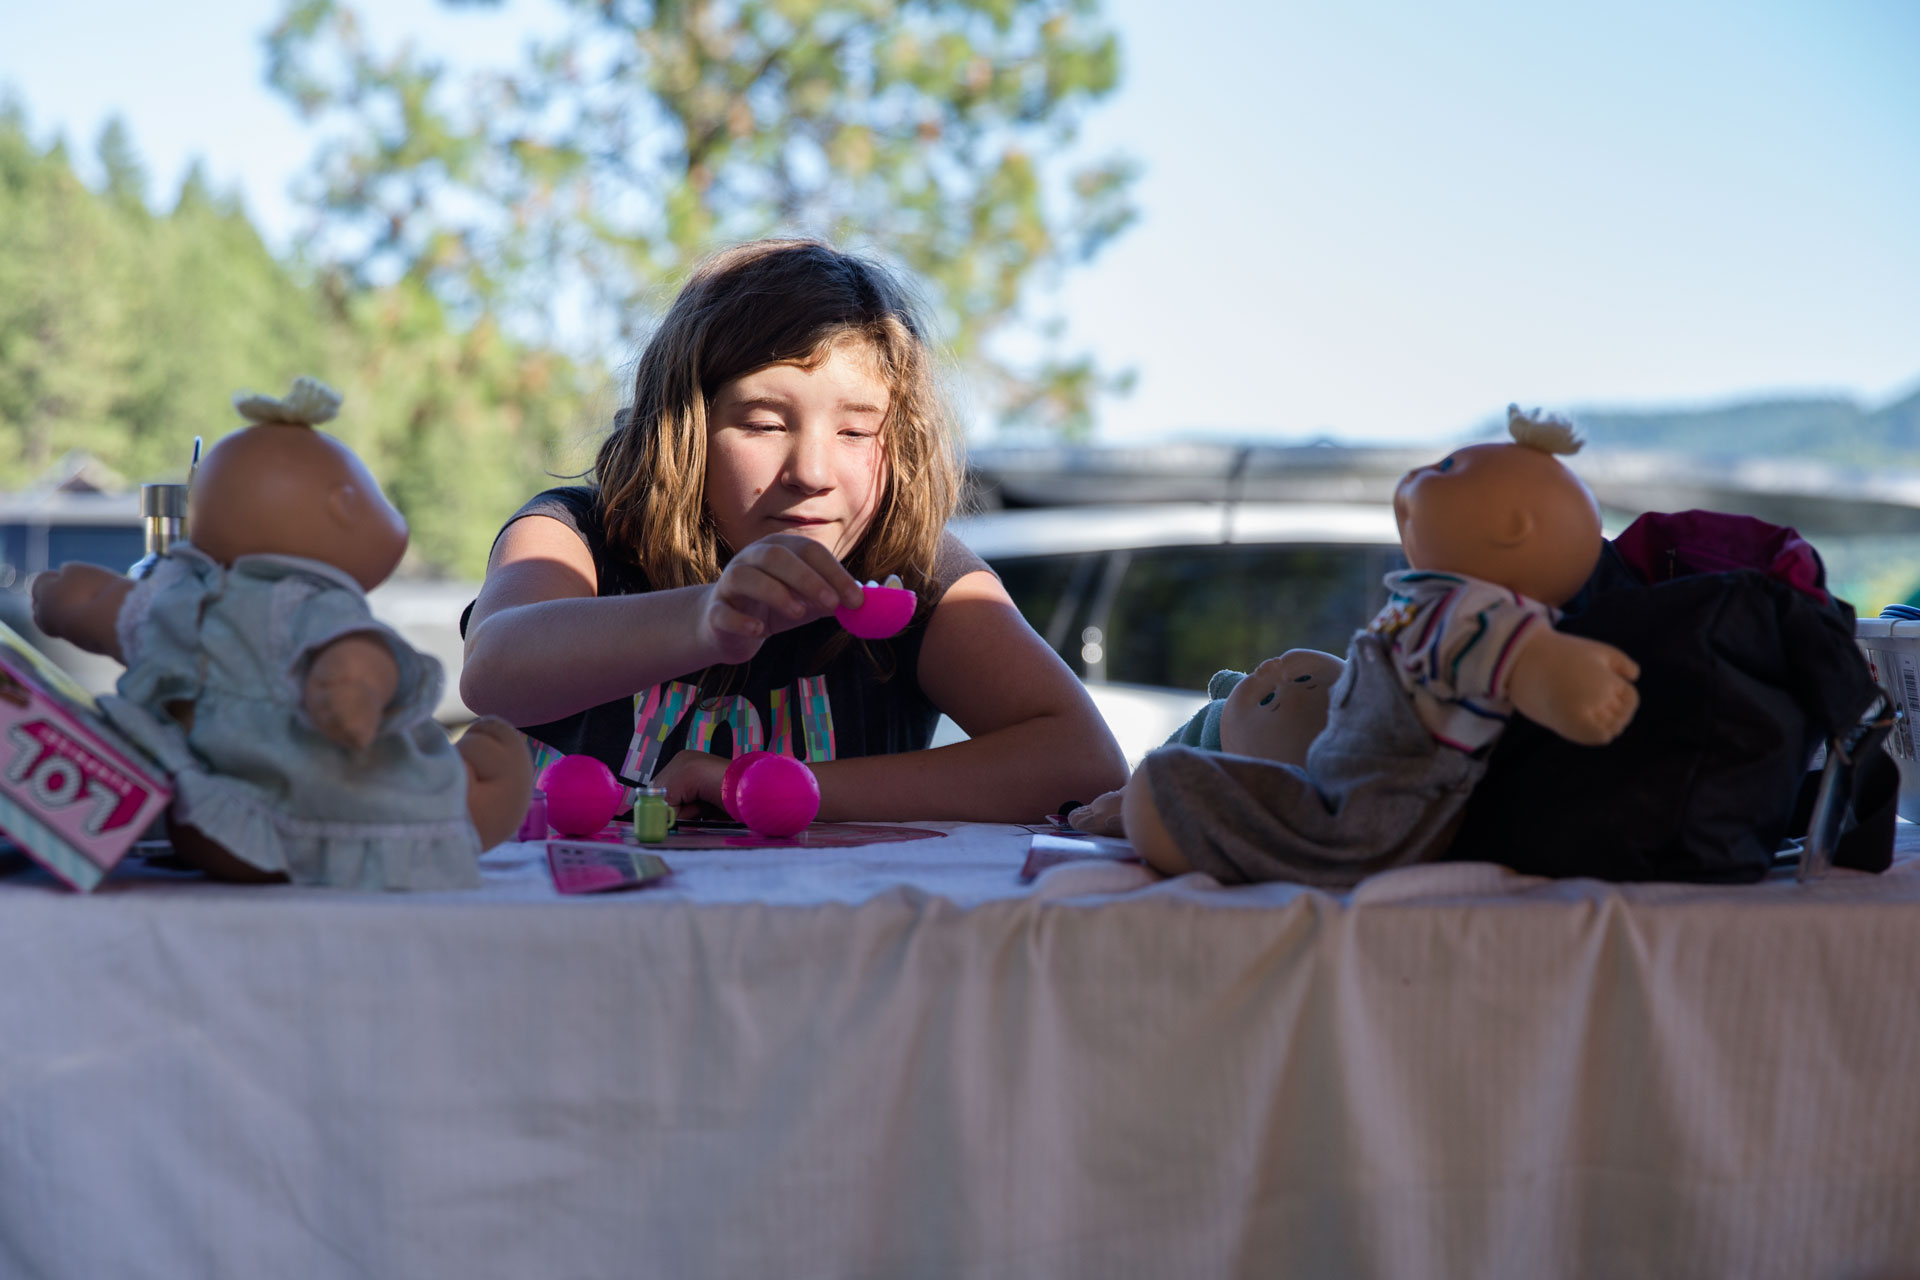 Young girl playing with cabbage patch dolls while camping at the table